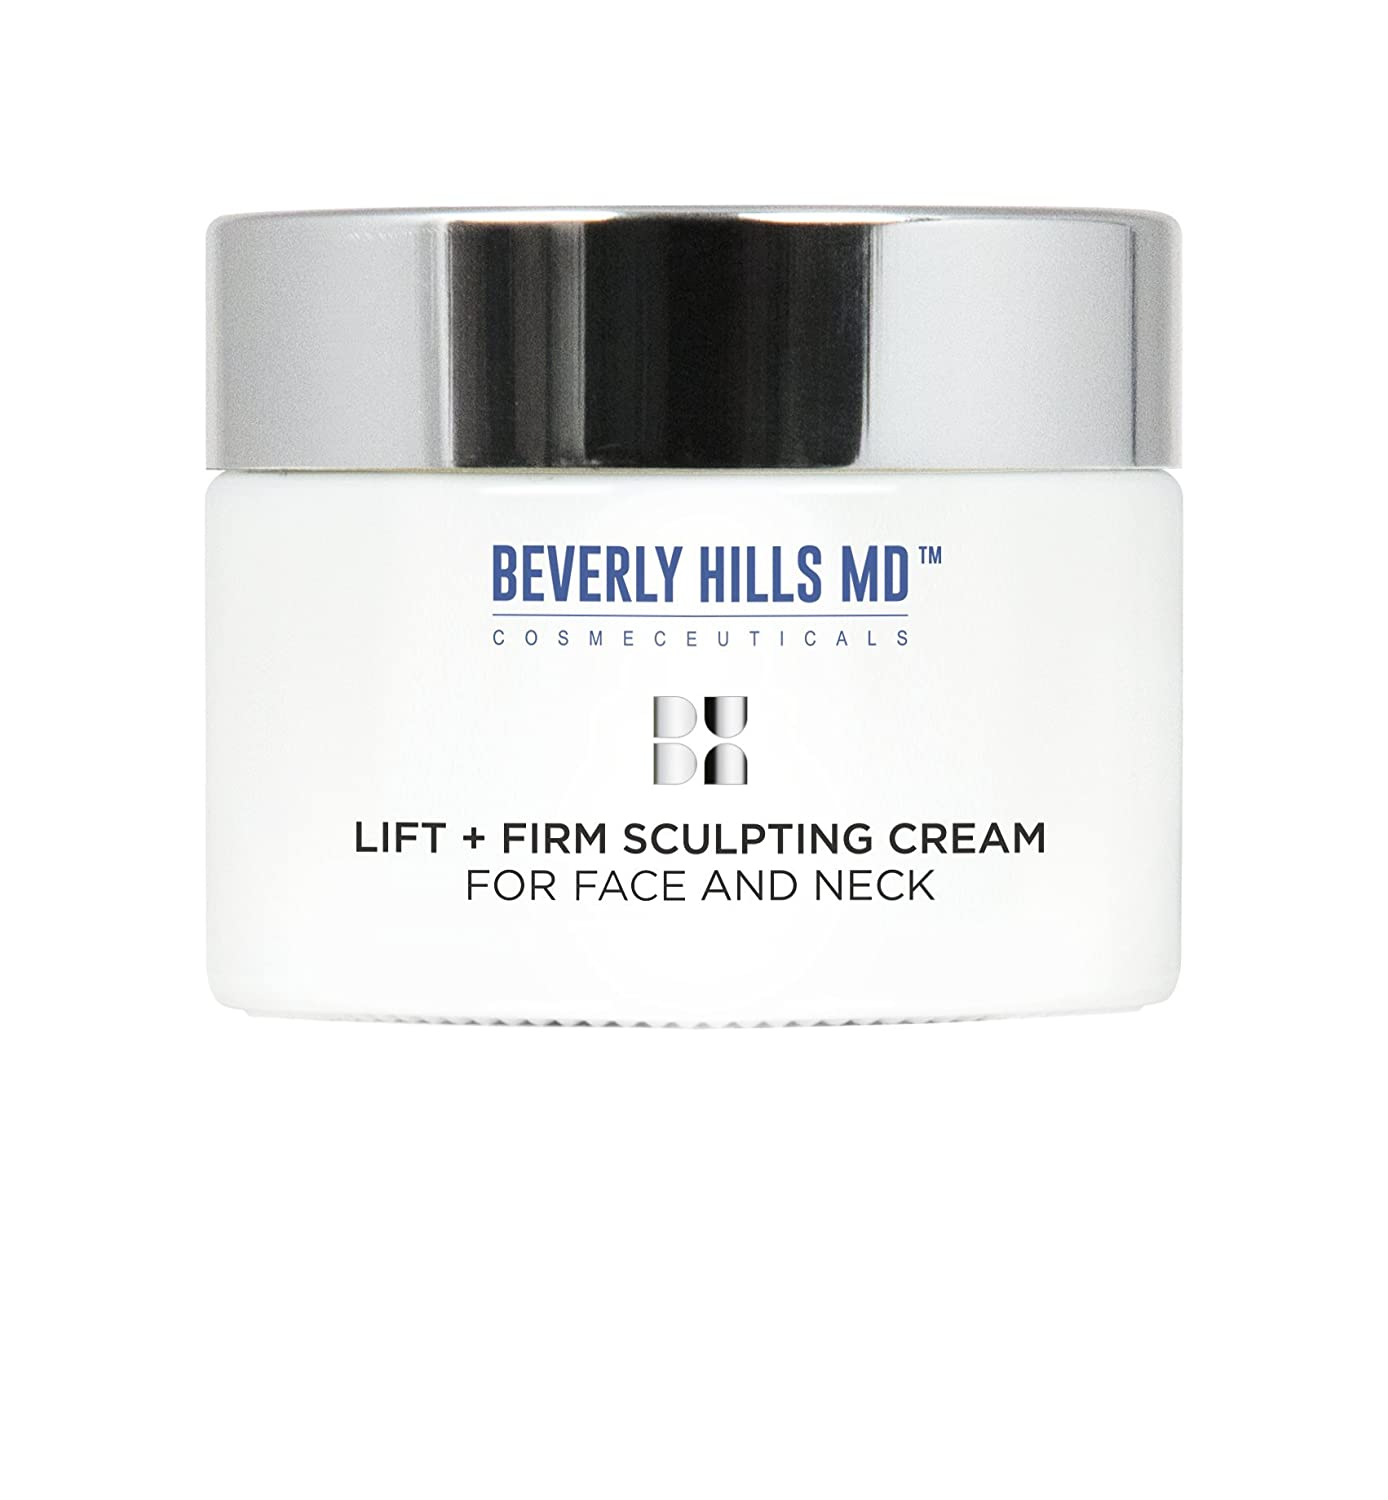 Beverly hills lift and firm cream reviews - Amazon Com Beverly Hills Md Lift Firm Sculpting Cream For Face And Neck 1 69 Fl Oz 50 Ml Everything Else